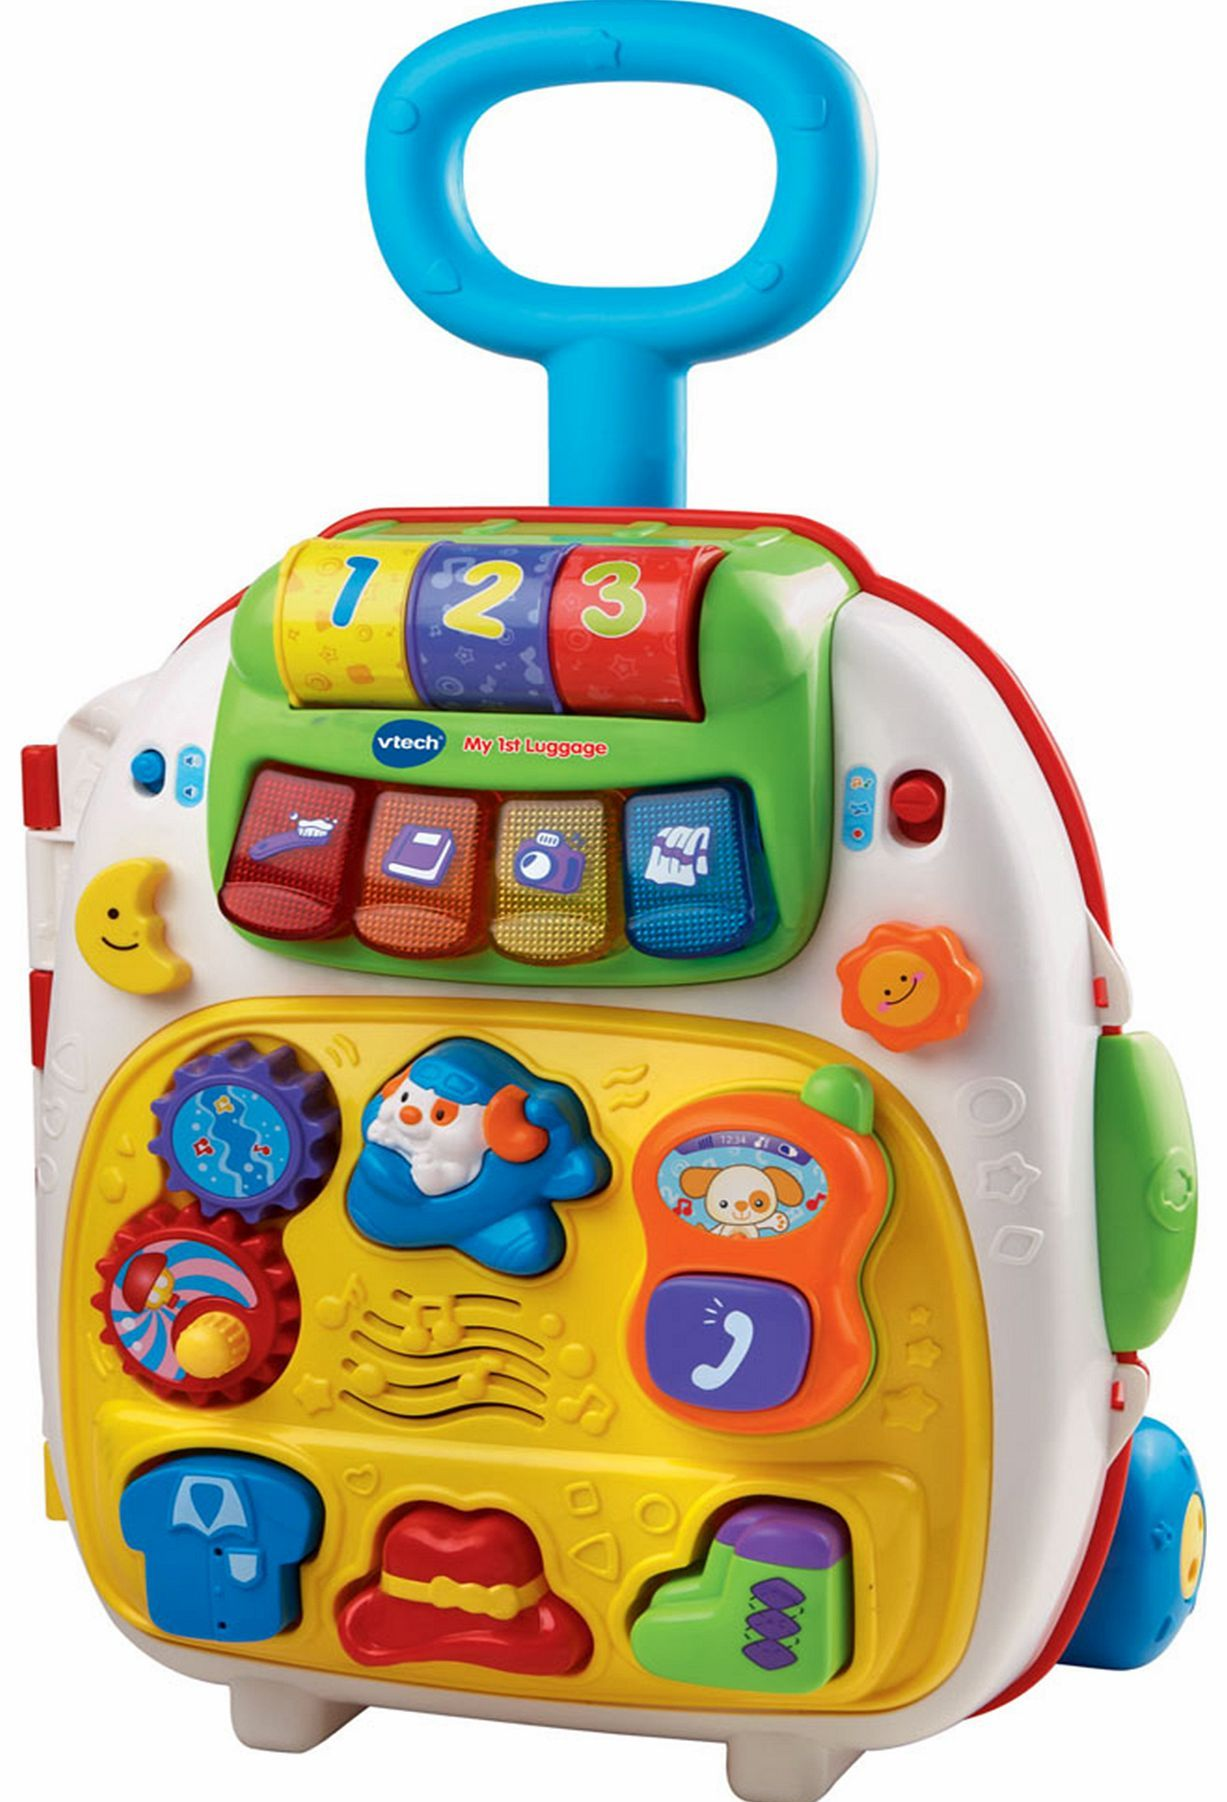 VTECH My 1st Luggage No description parestoreprices